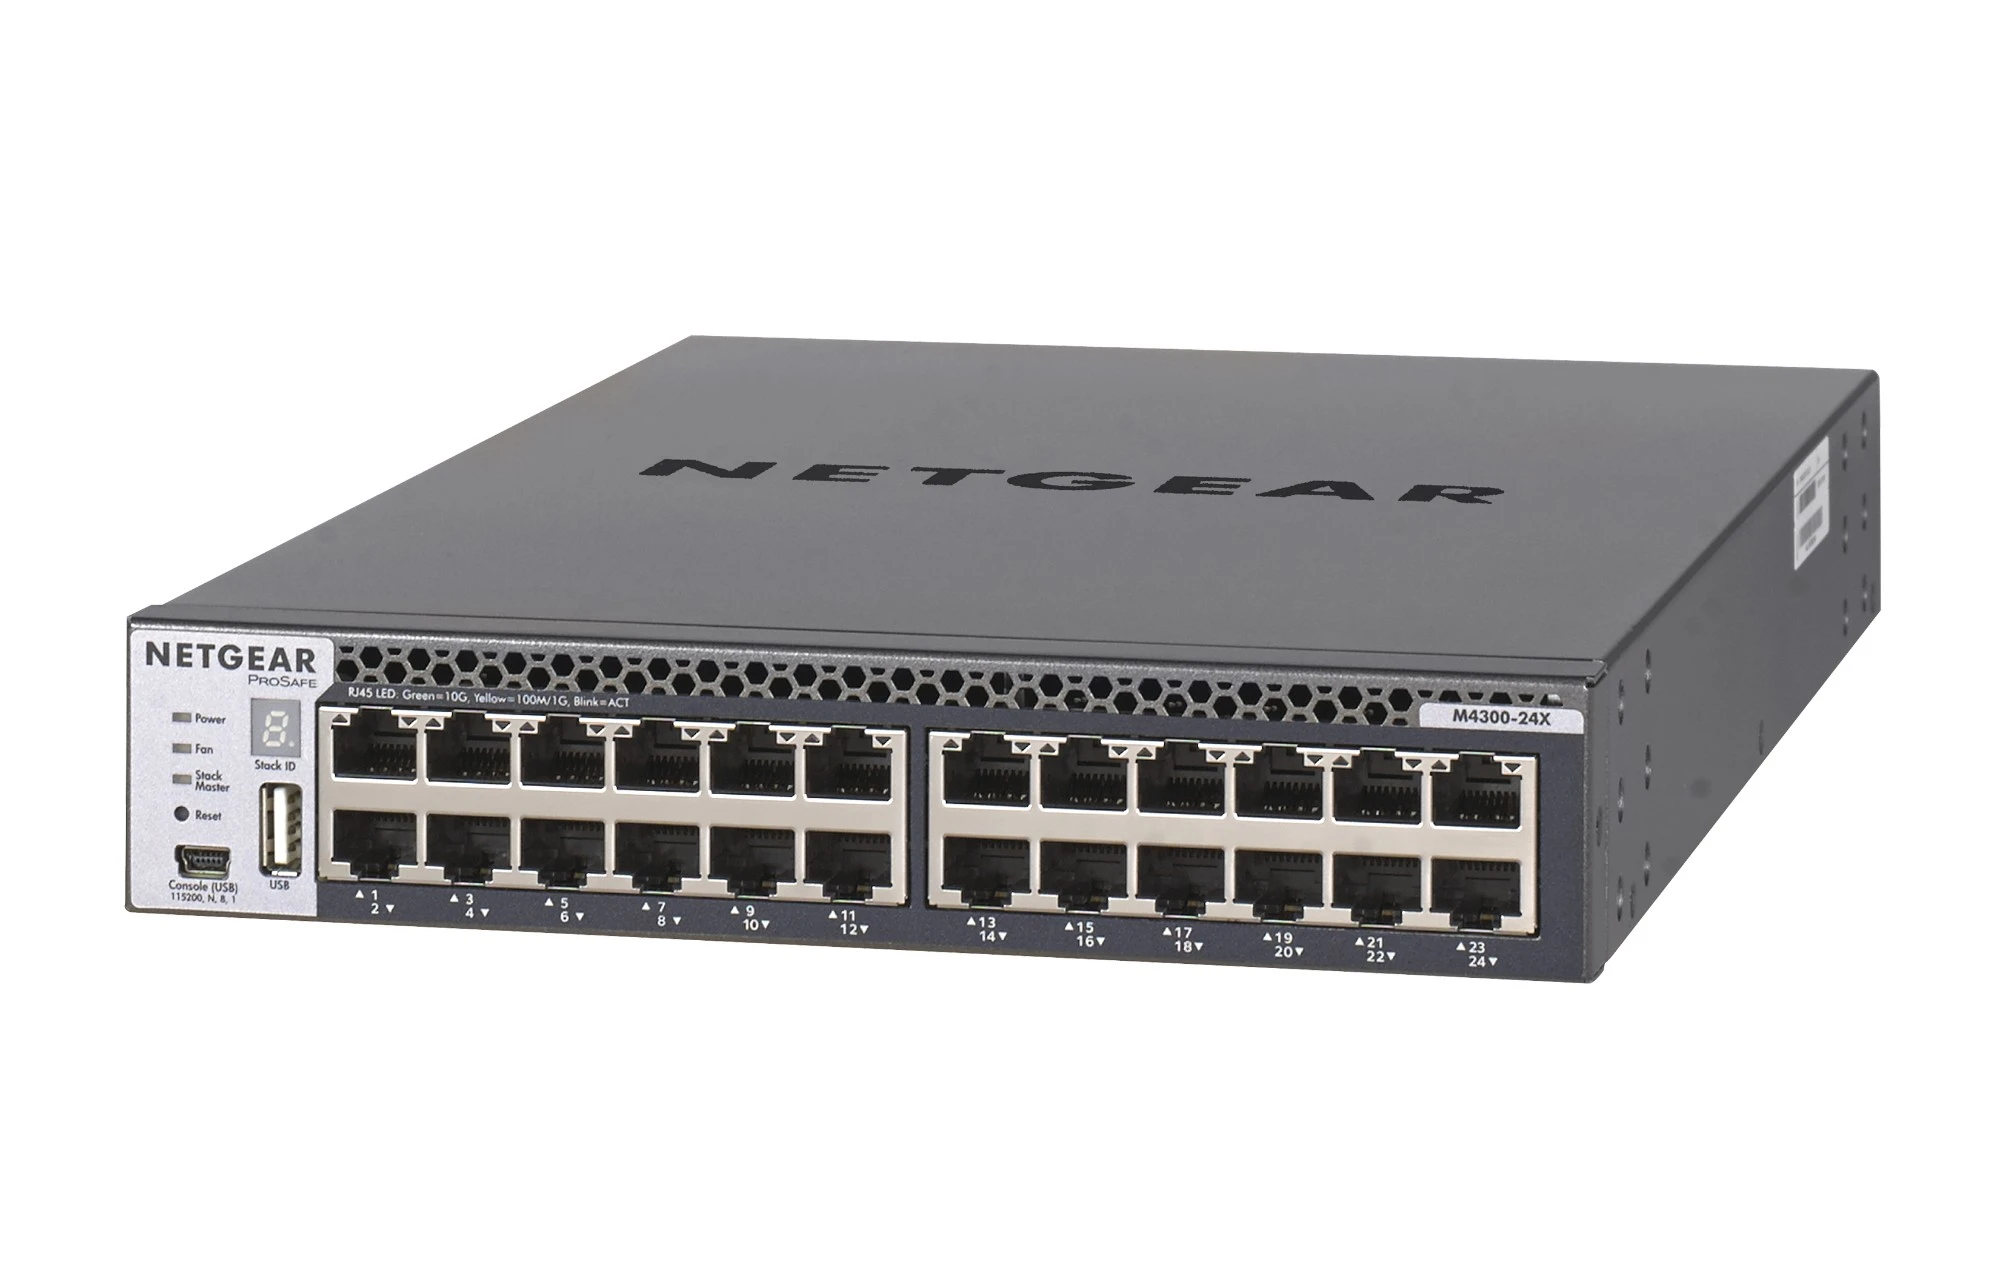 Netgear M4300-24X Managed L3 10G Ethernet (100/1000/10000) Black Netgear M4300-24X Managed L3 10G Ethernet (100/1000/10000) Black